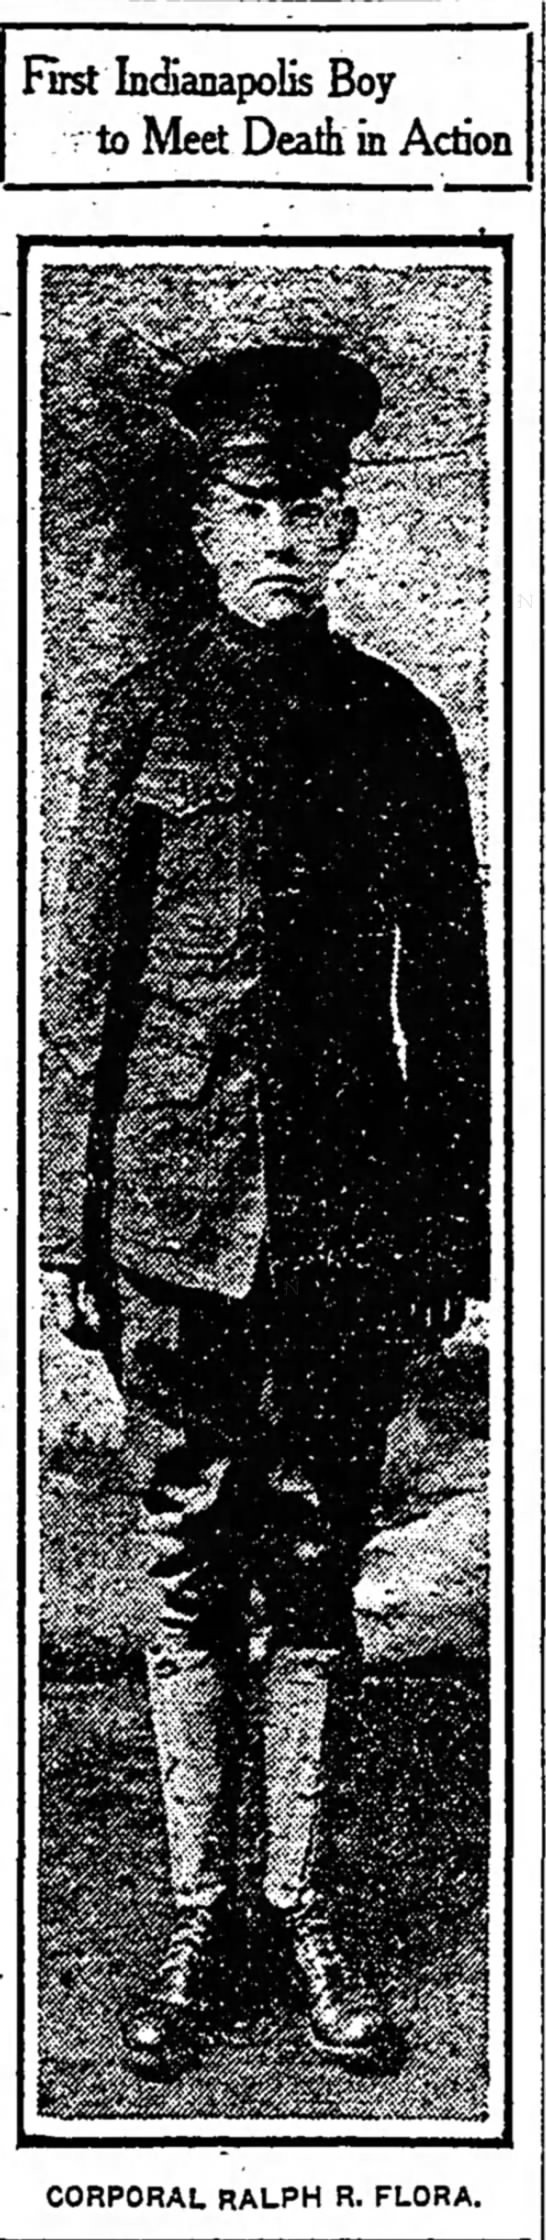 The Indianapolis Star, 12 March 1918, p. 1